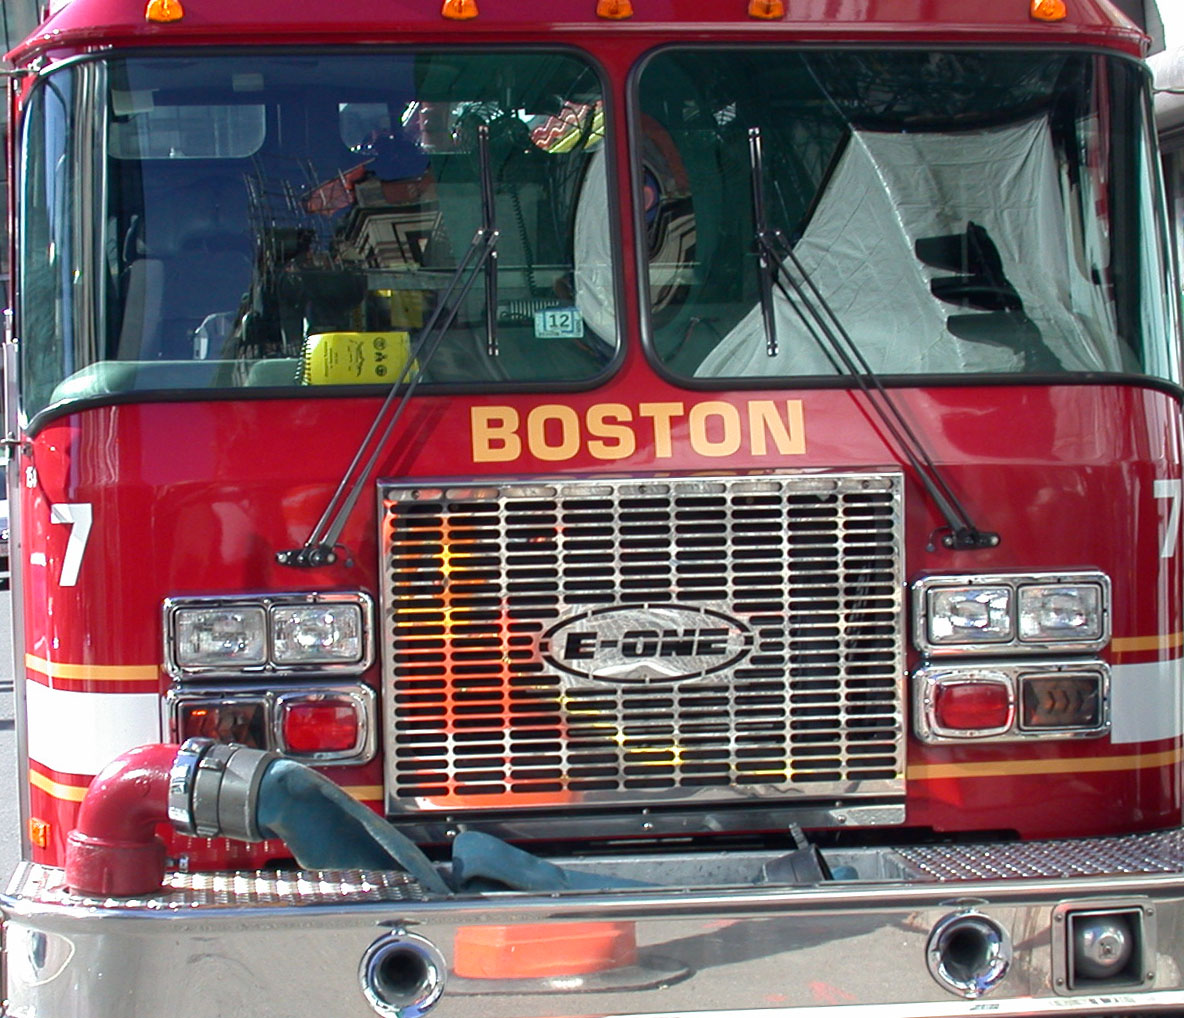 boston fire engine front - all rights reserved Ernest J. Bordini, Ph.D.